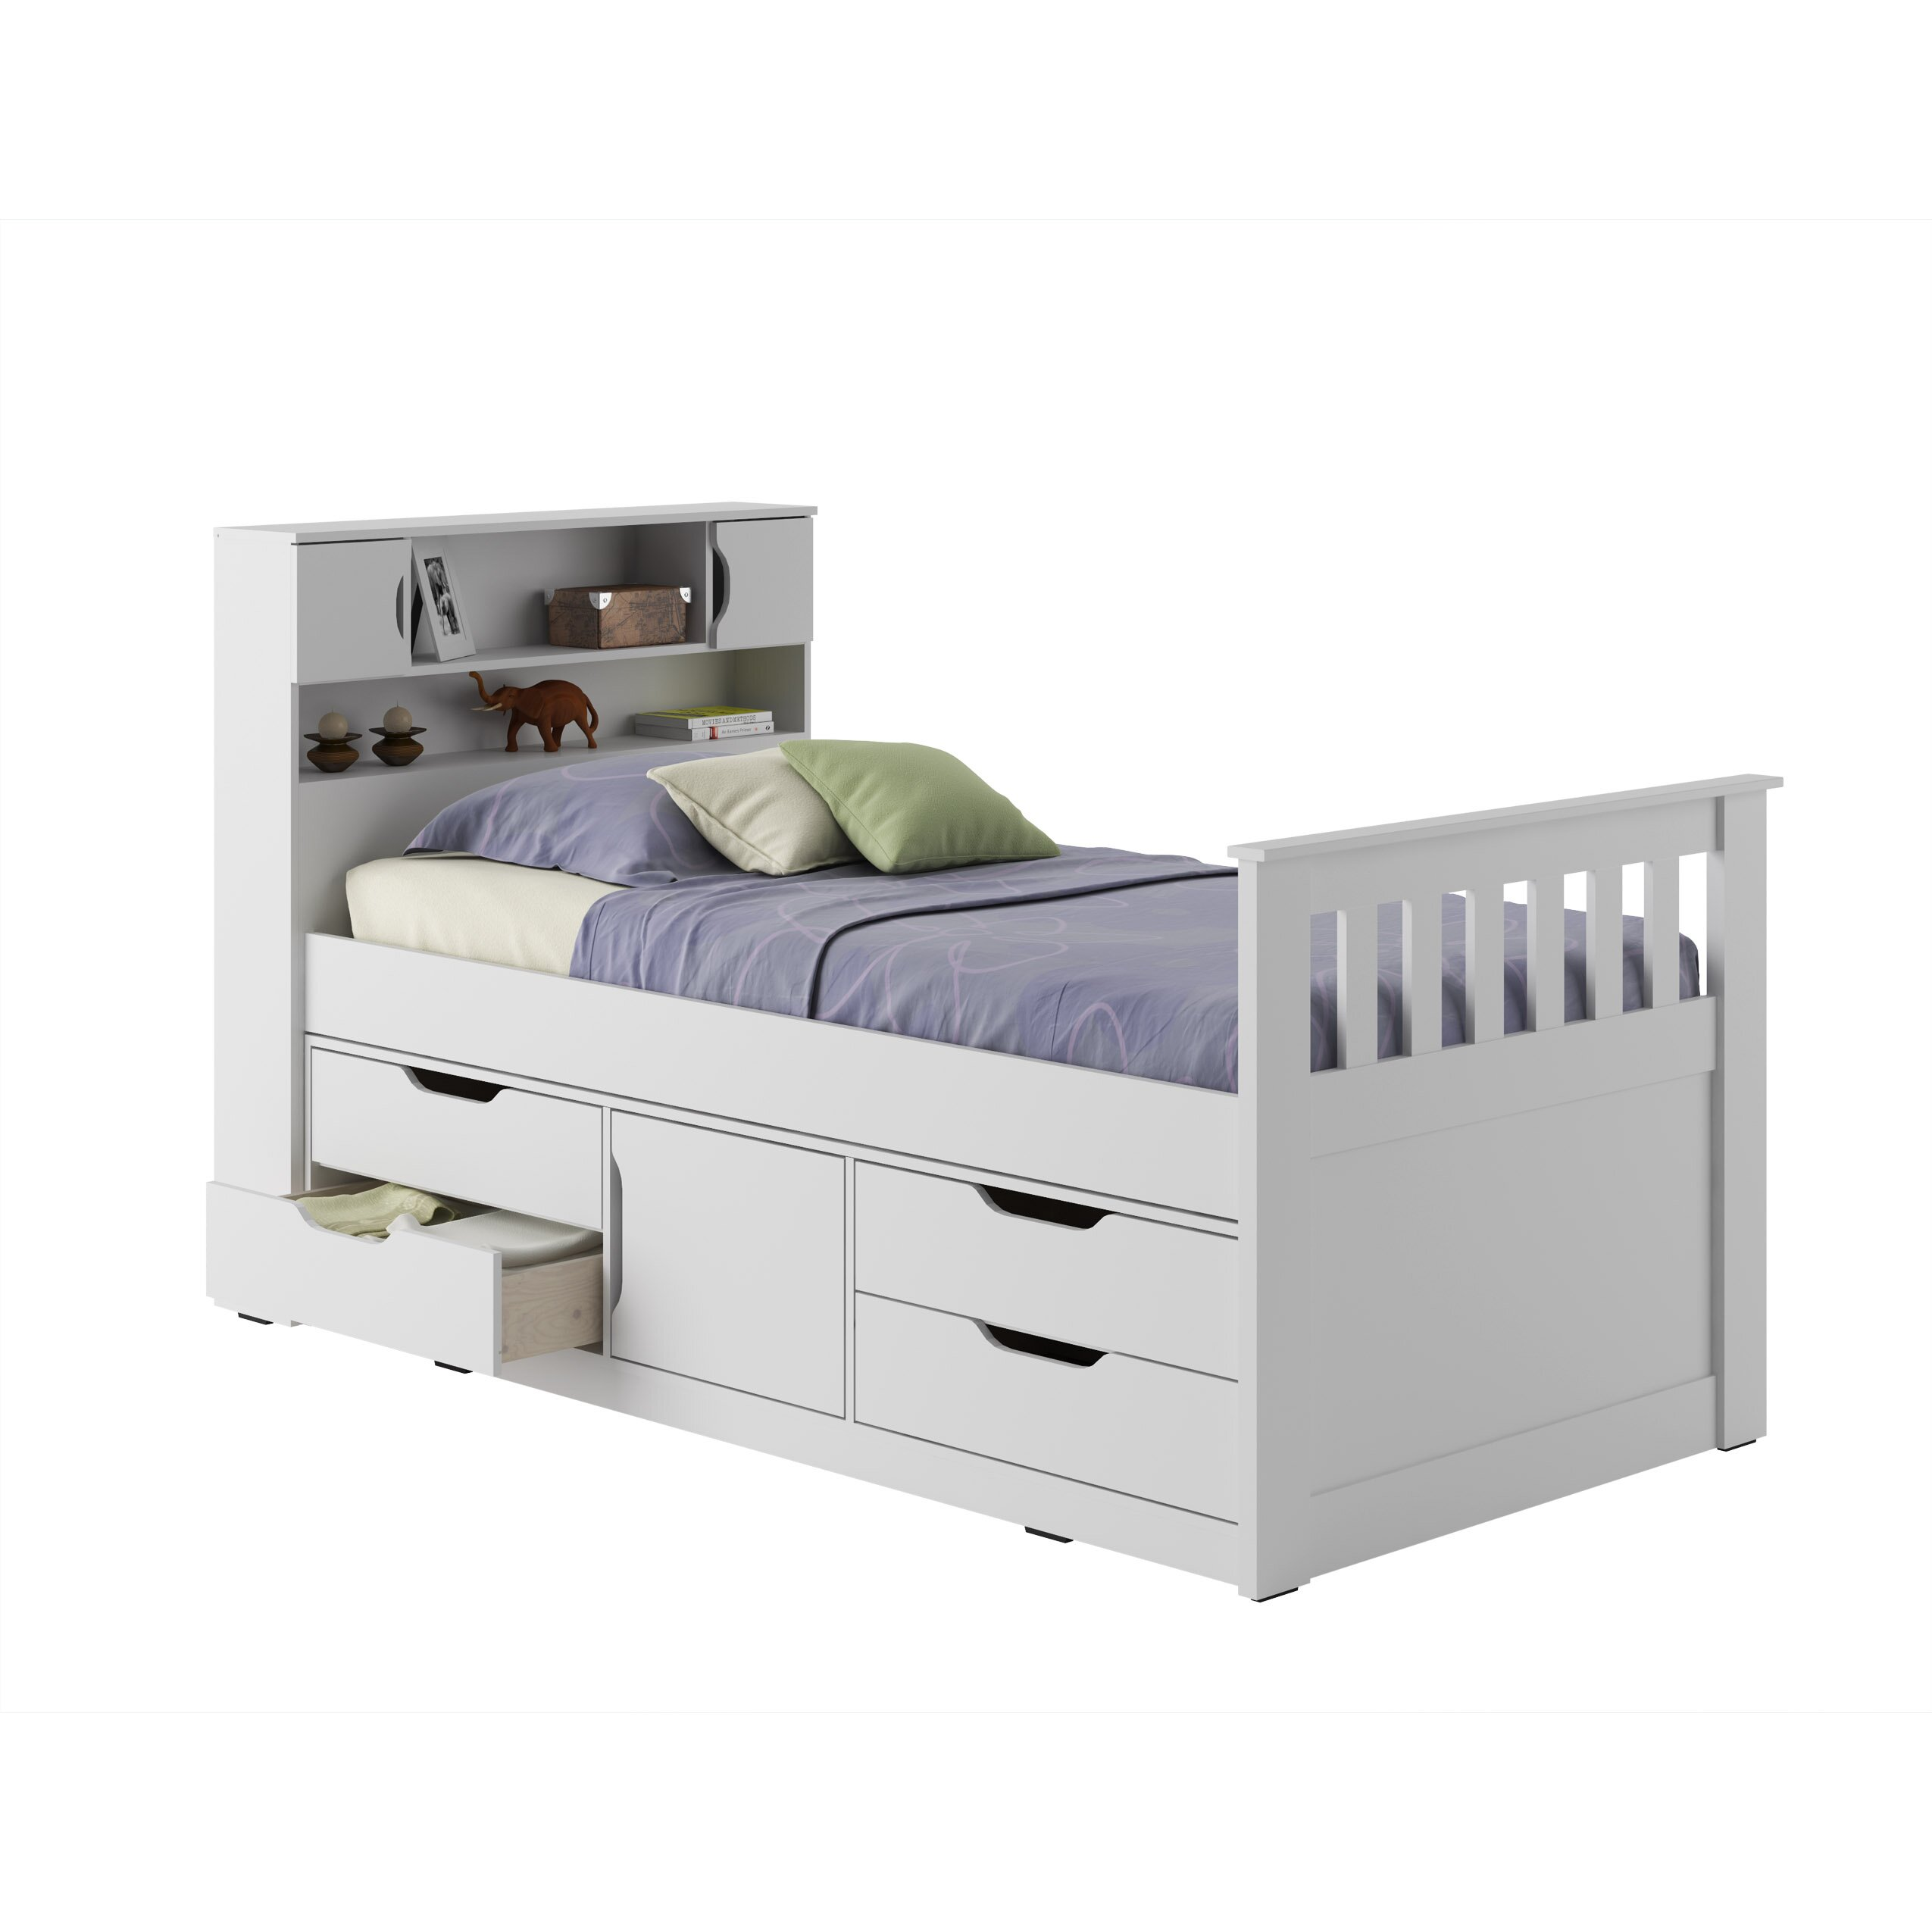 Full size white captains bed with storage -  White Finish Full Size Captains Bed With Storage Drawers 7075 Breakwater Bay Simmons Casegoods Charthouse Twin Captain Bed With